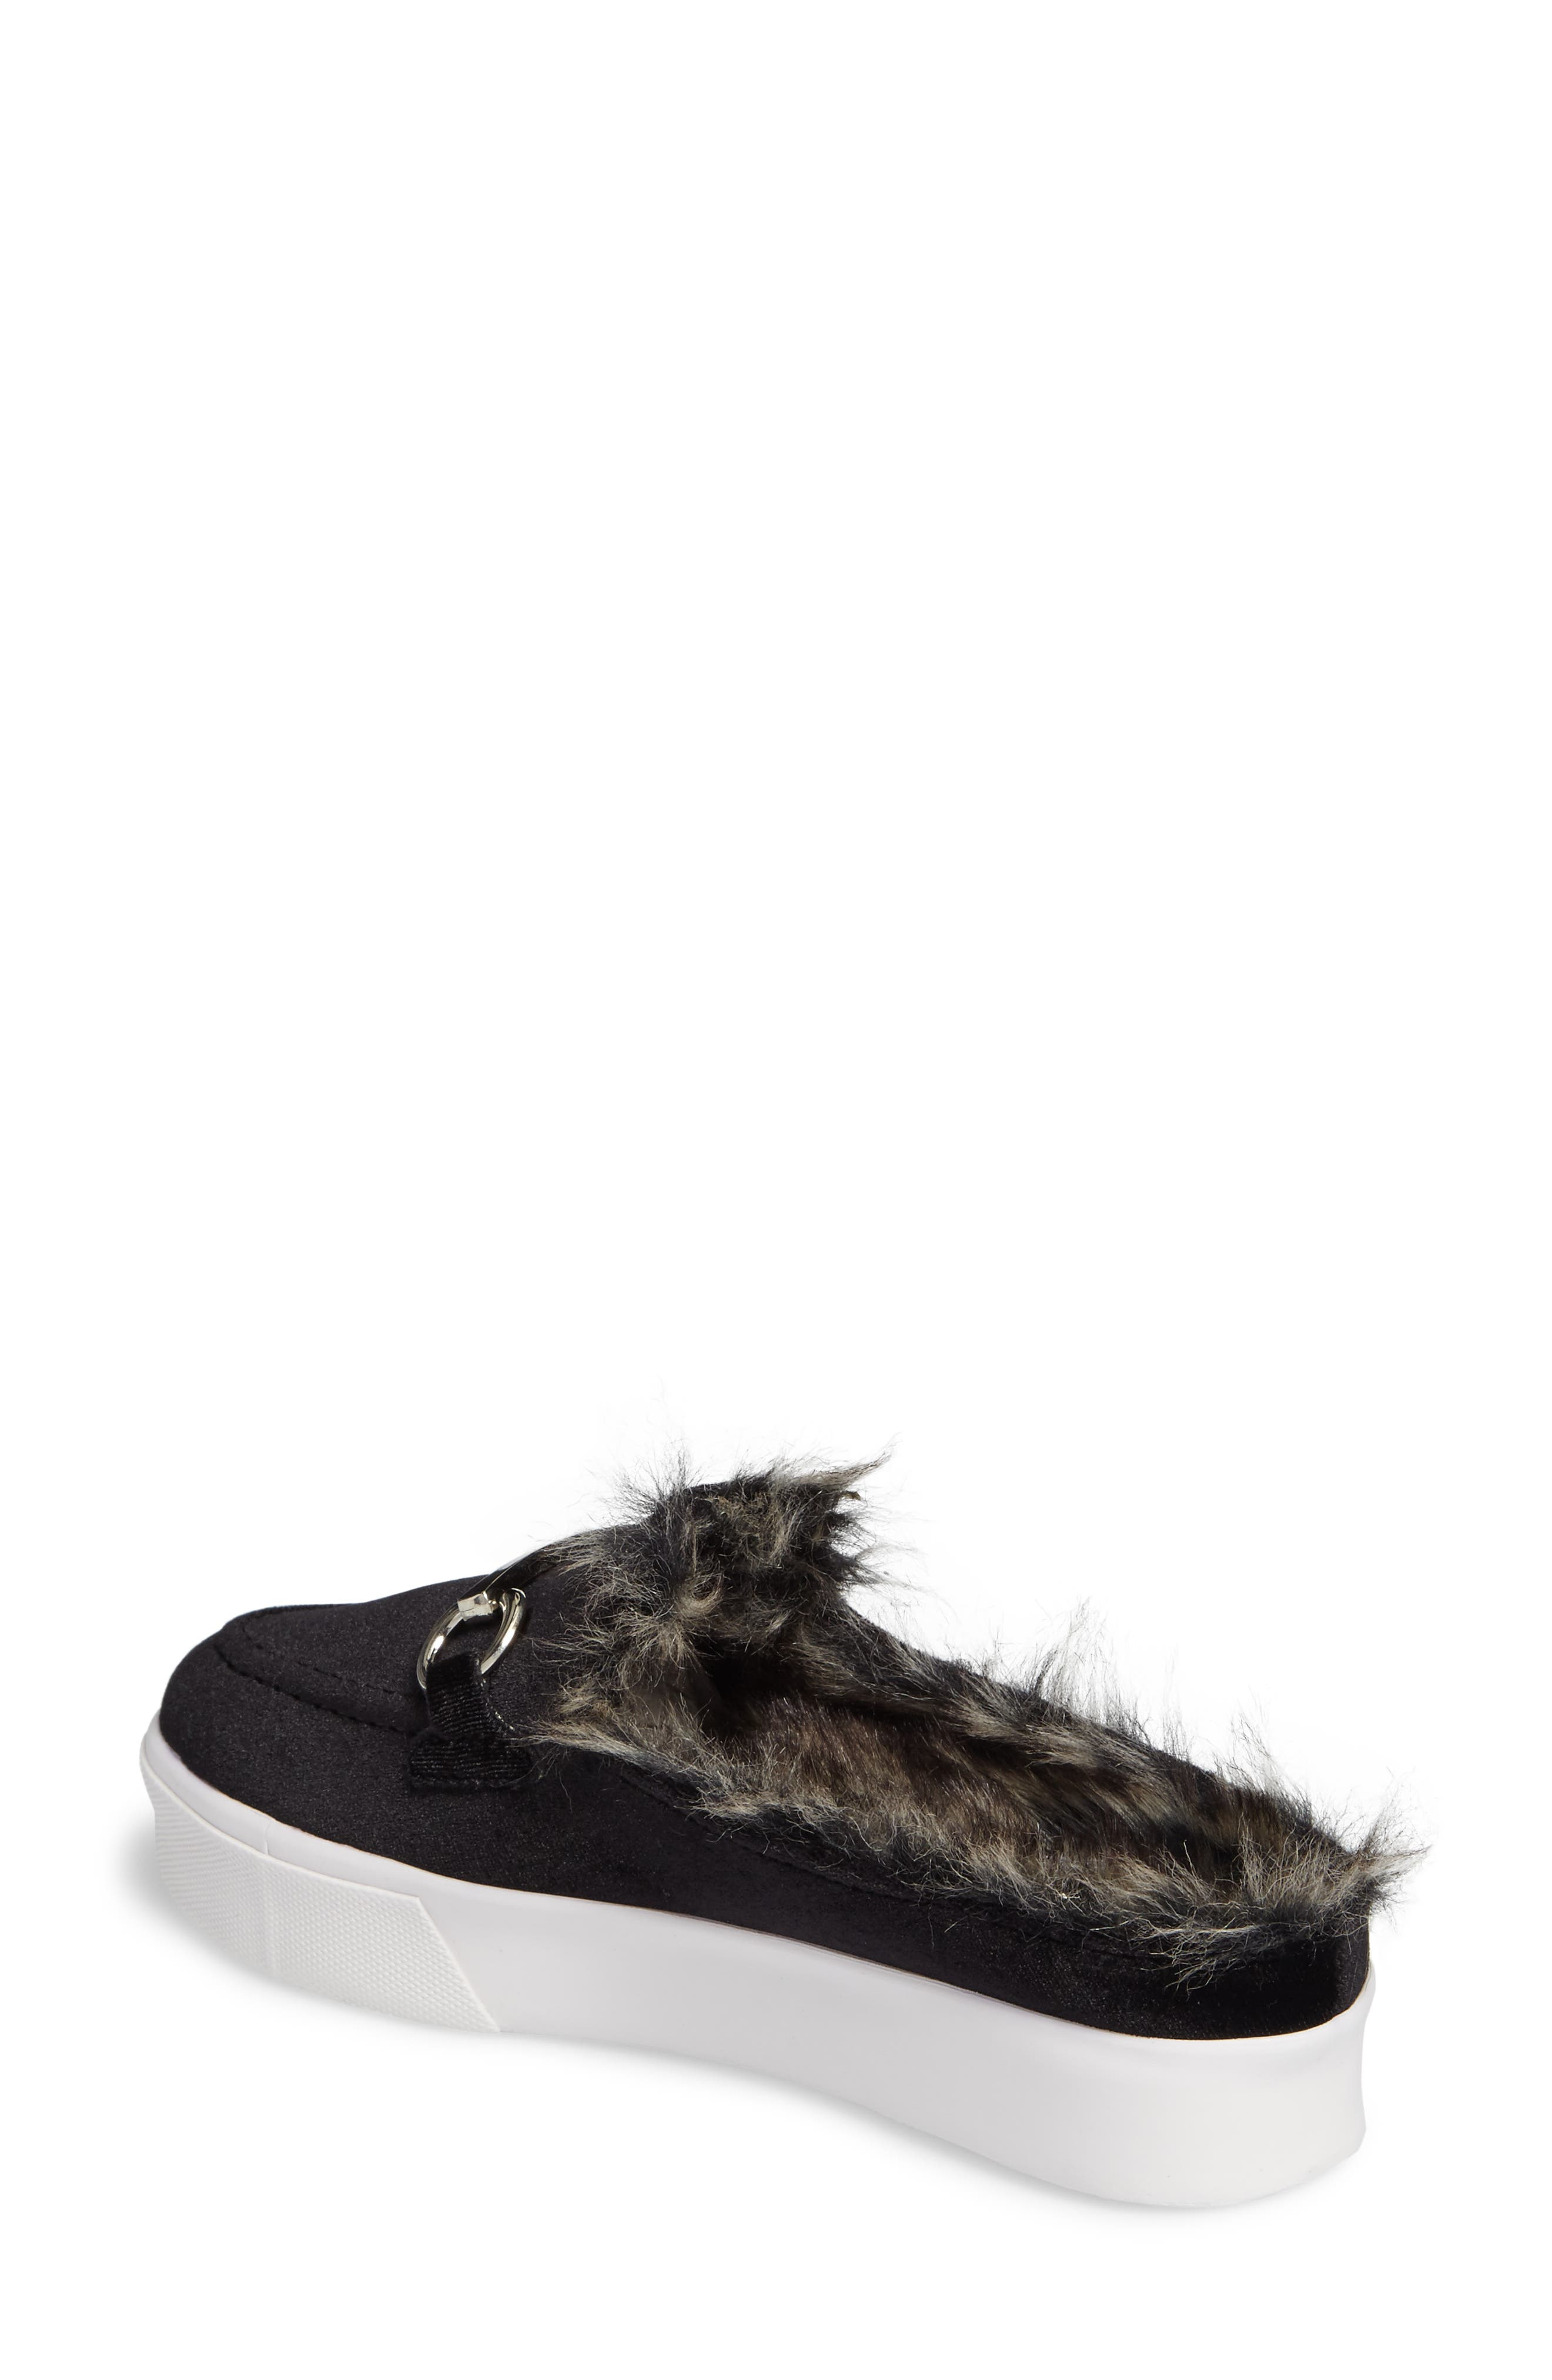 Tico Faux Fur Sneaker Mule,                             Alternate thumbnail 2, color,                             003